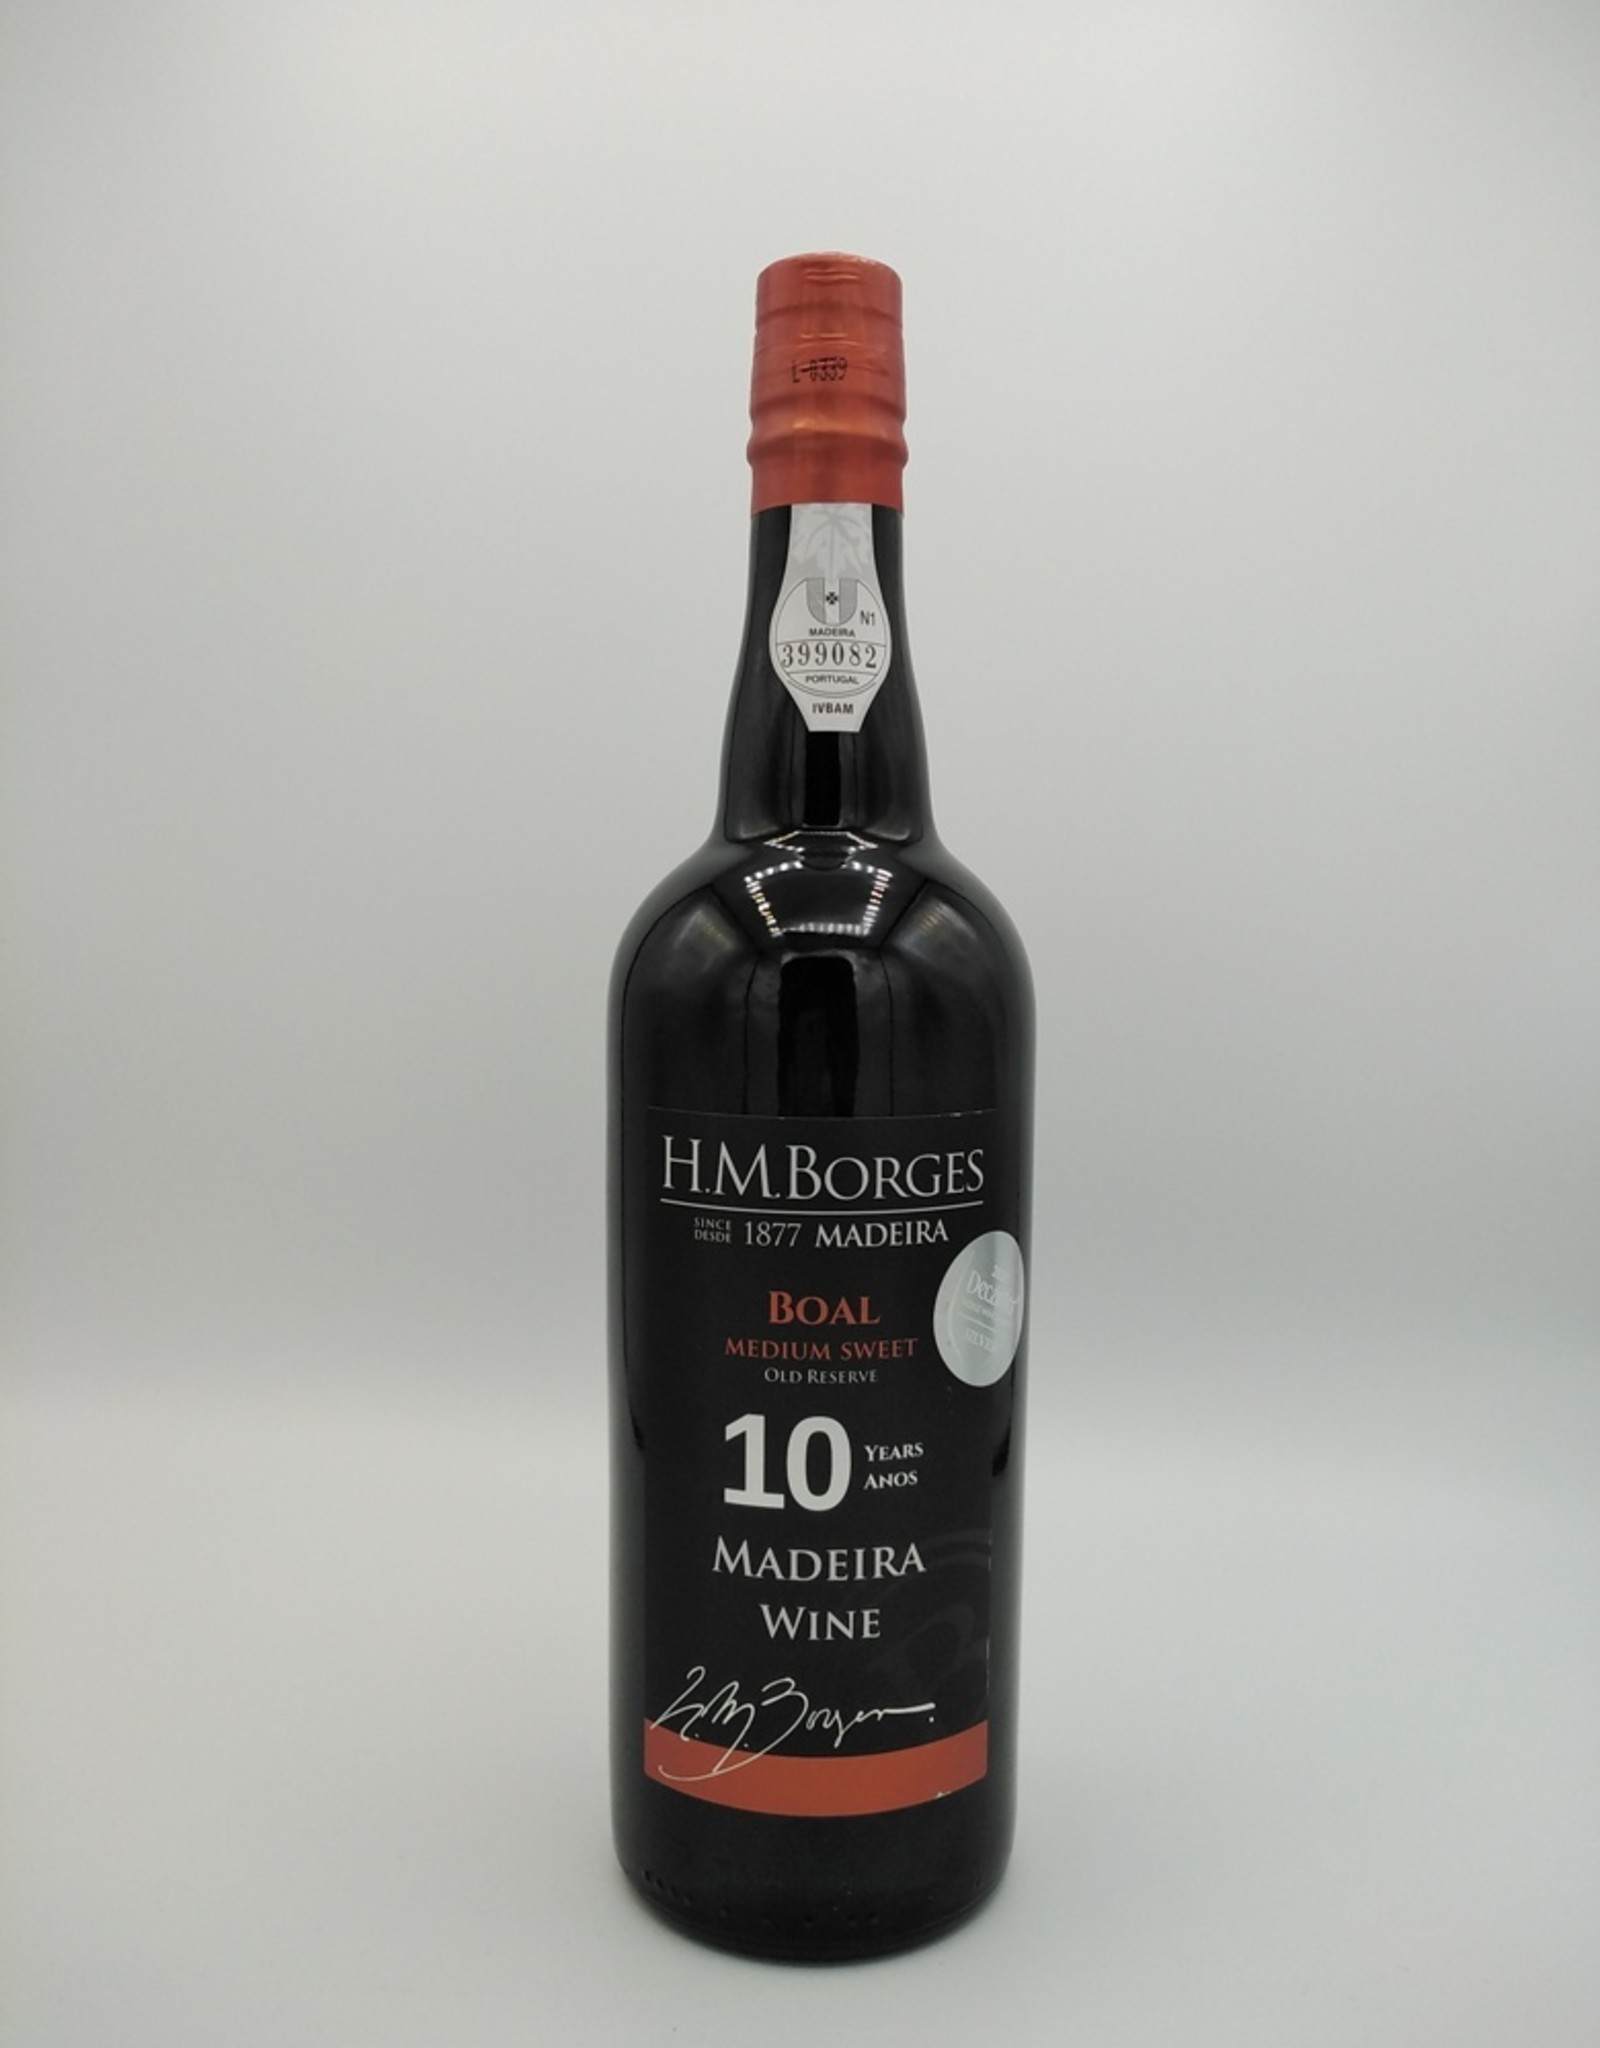 H.M. Borges H.M. Borges - Madeira Old Reserve Boal - 10 years